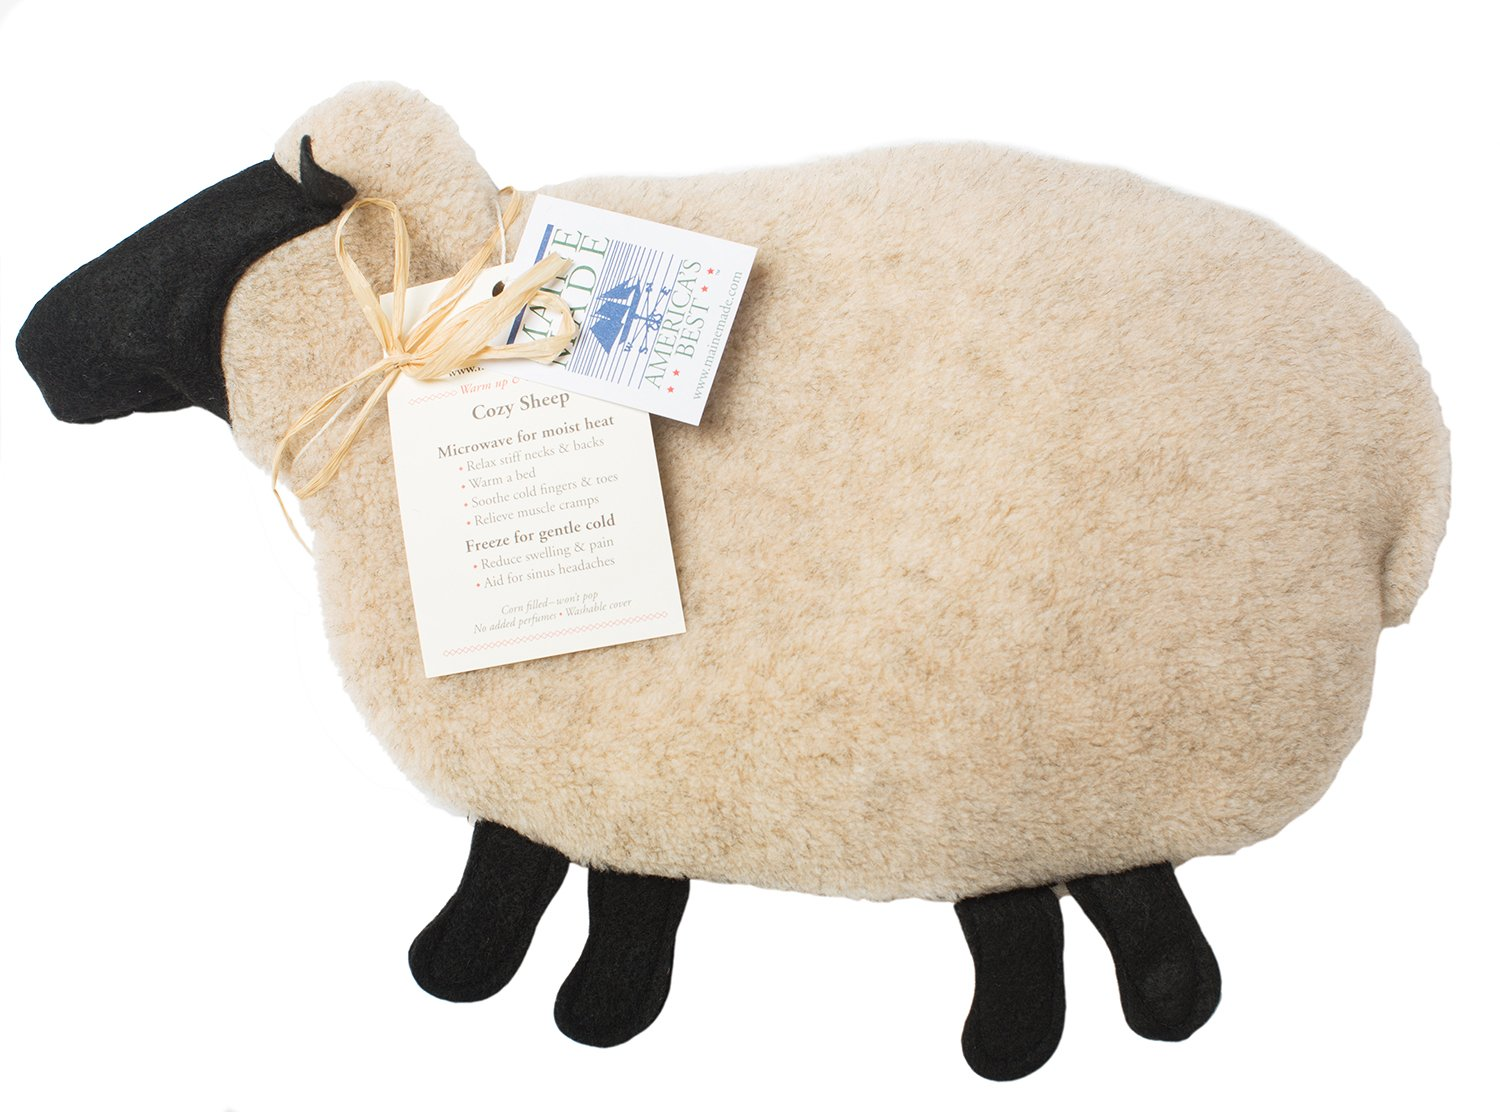 Maine Warmers Cozy Sheep Corn Filled Heating Pad - Heat or Freeze!